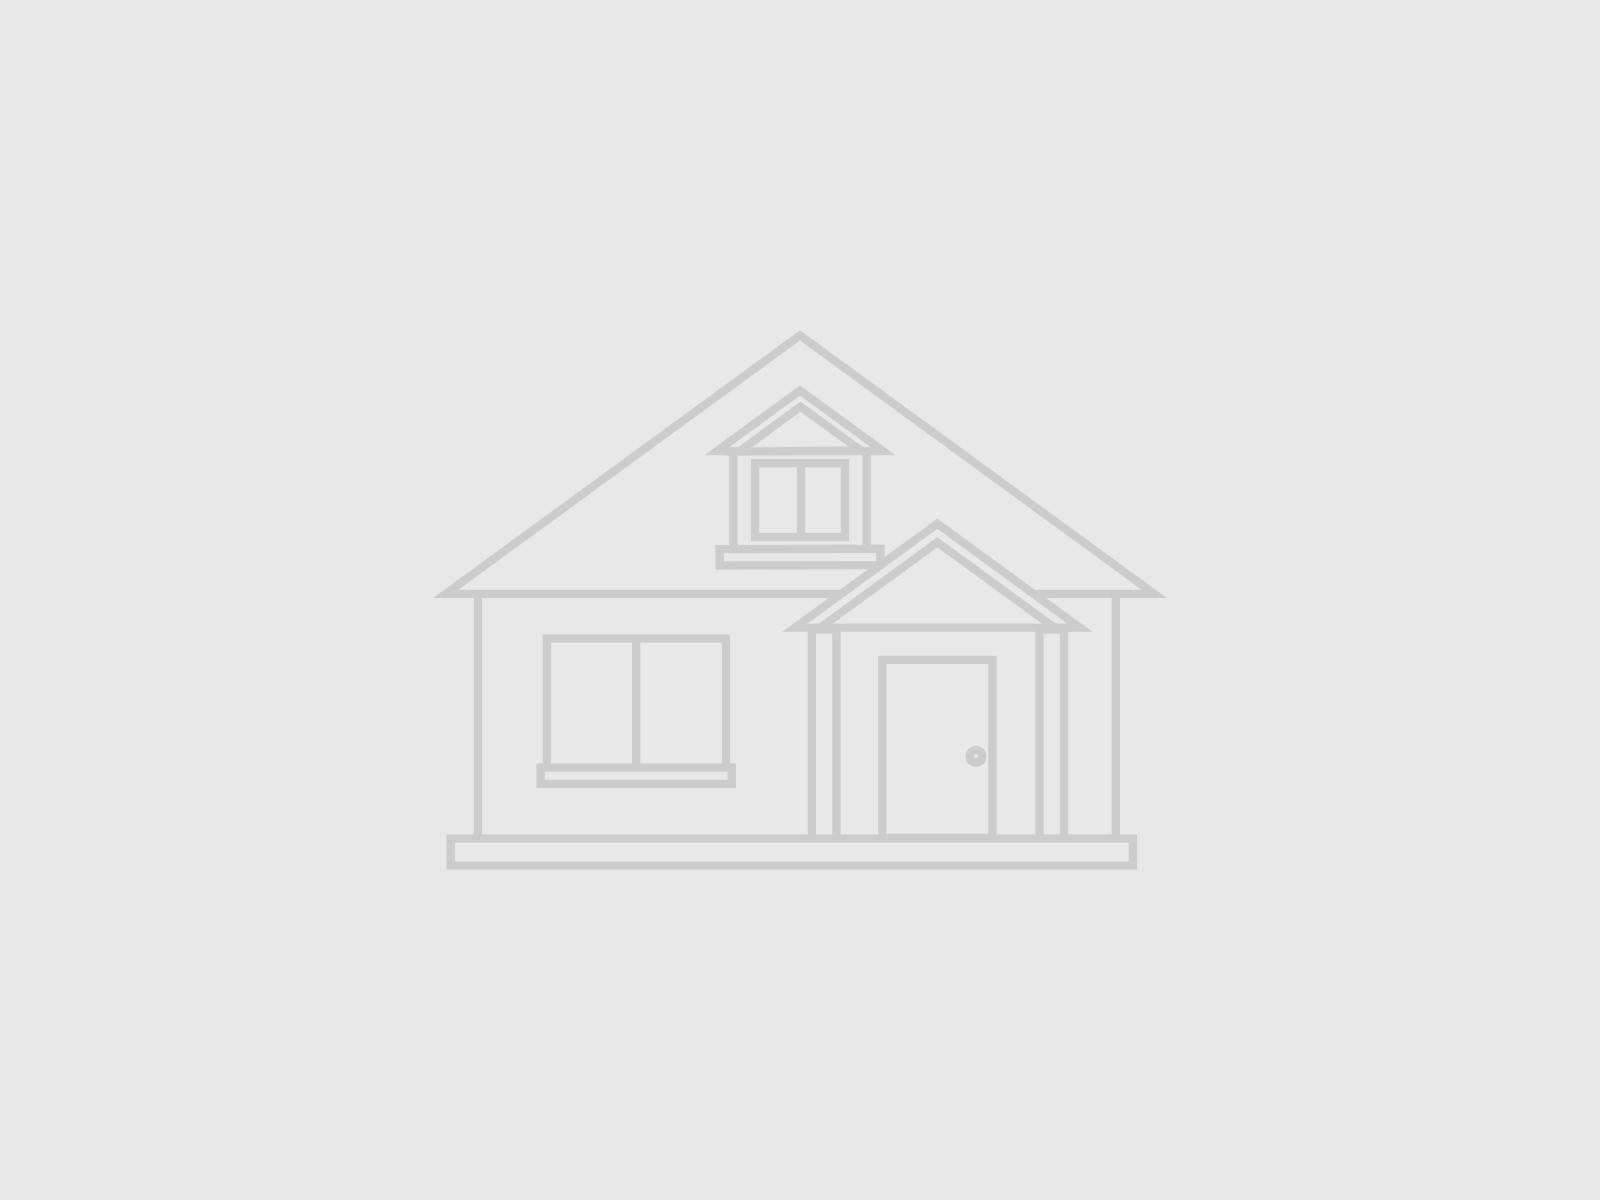 Land for Sale at 2 VINEYAR Avenue Lloyd, New York 12528 United States